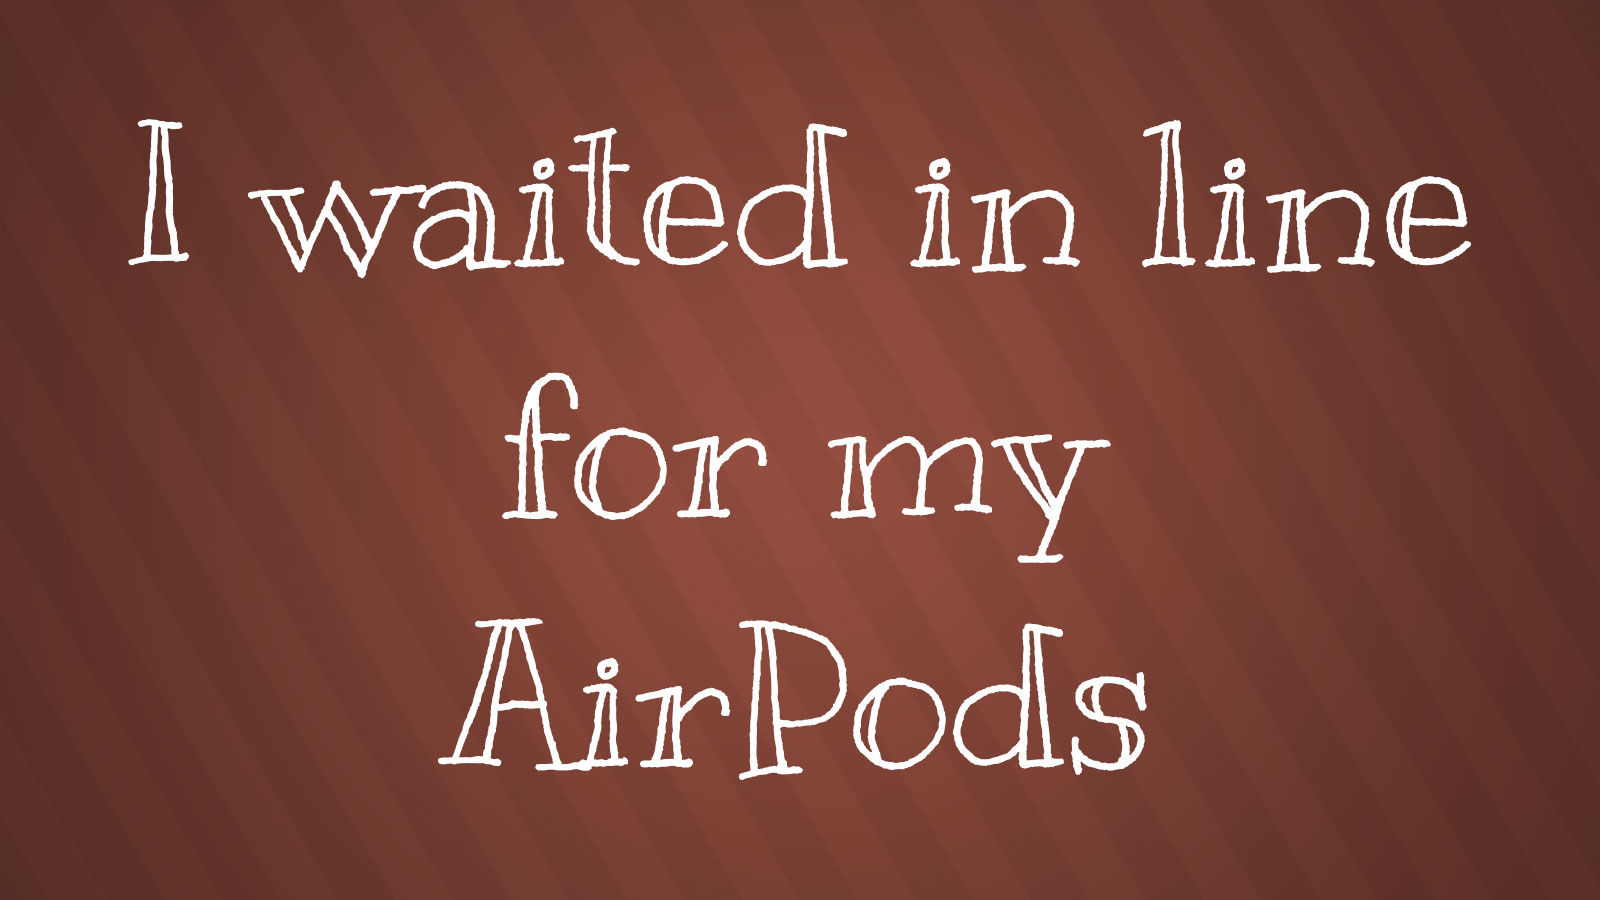 I waited in line for my AirPods